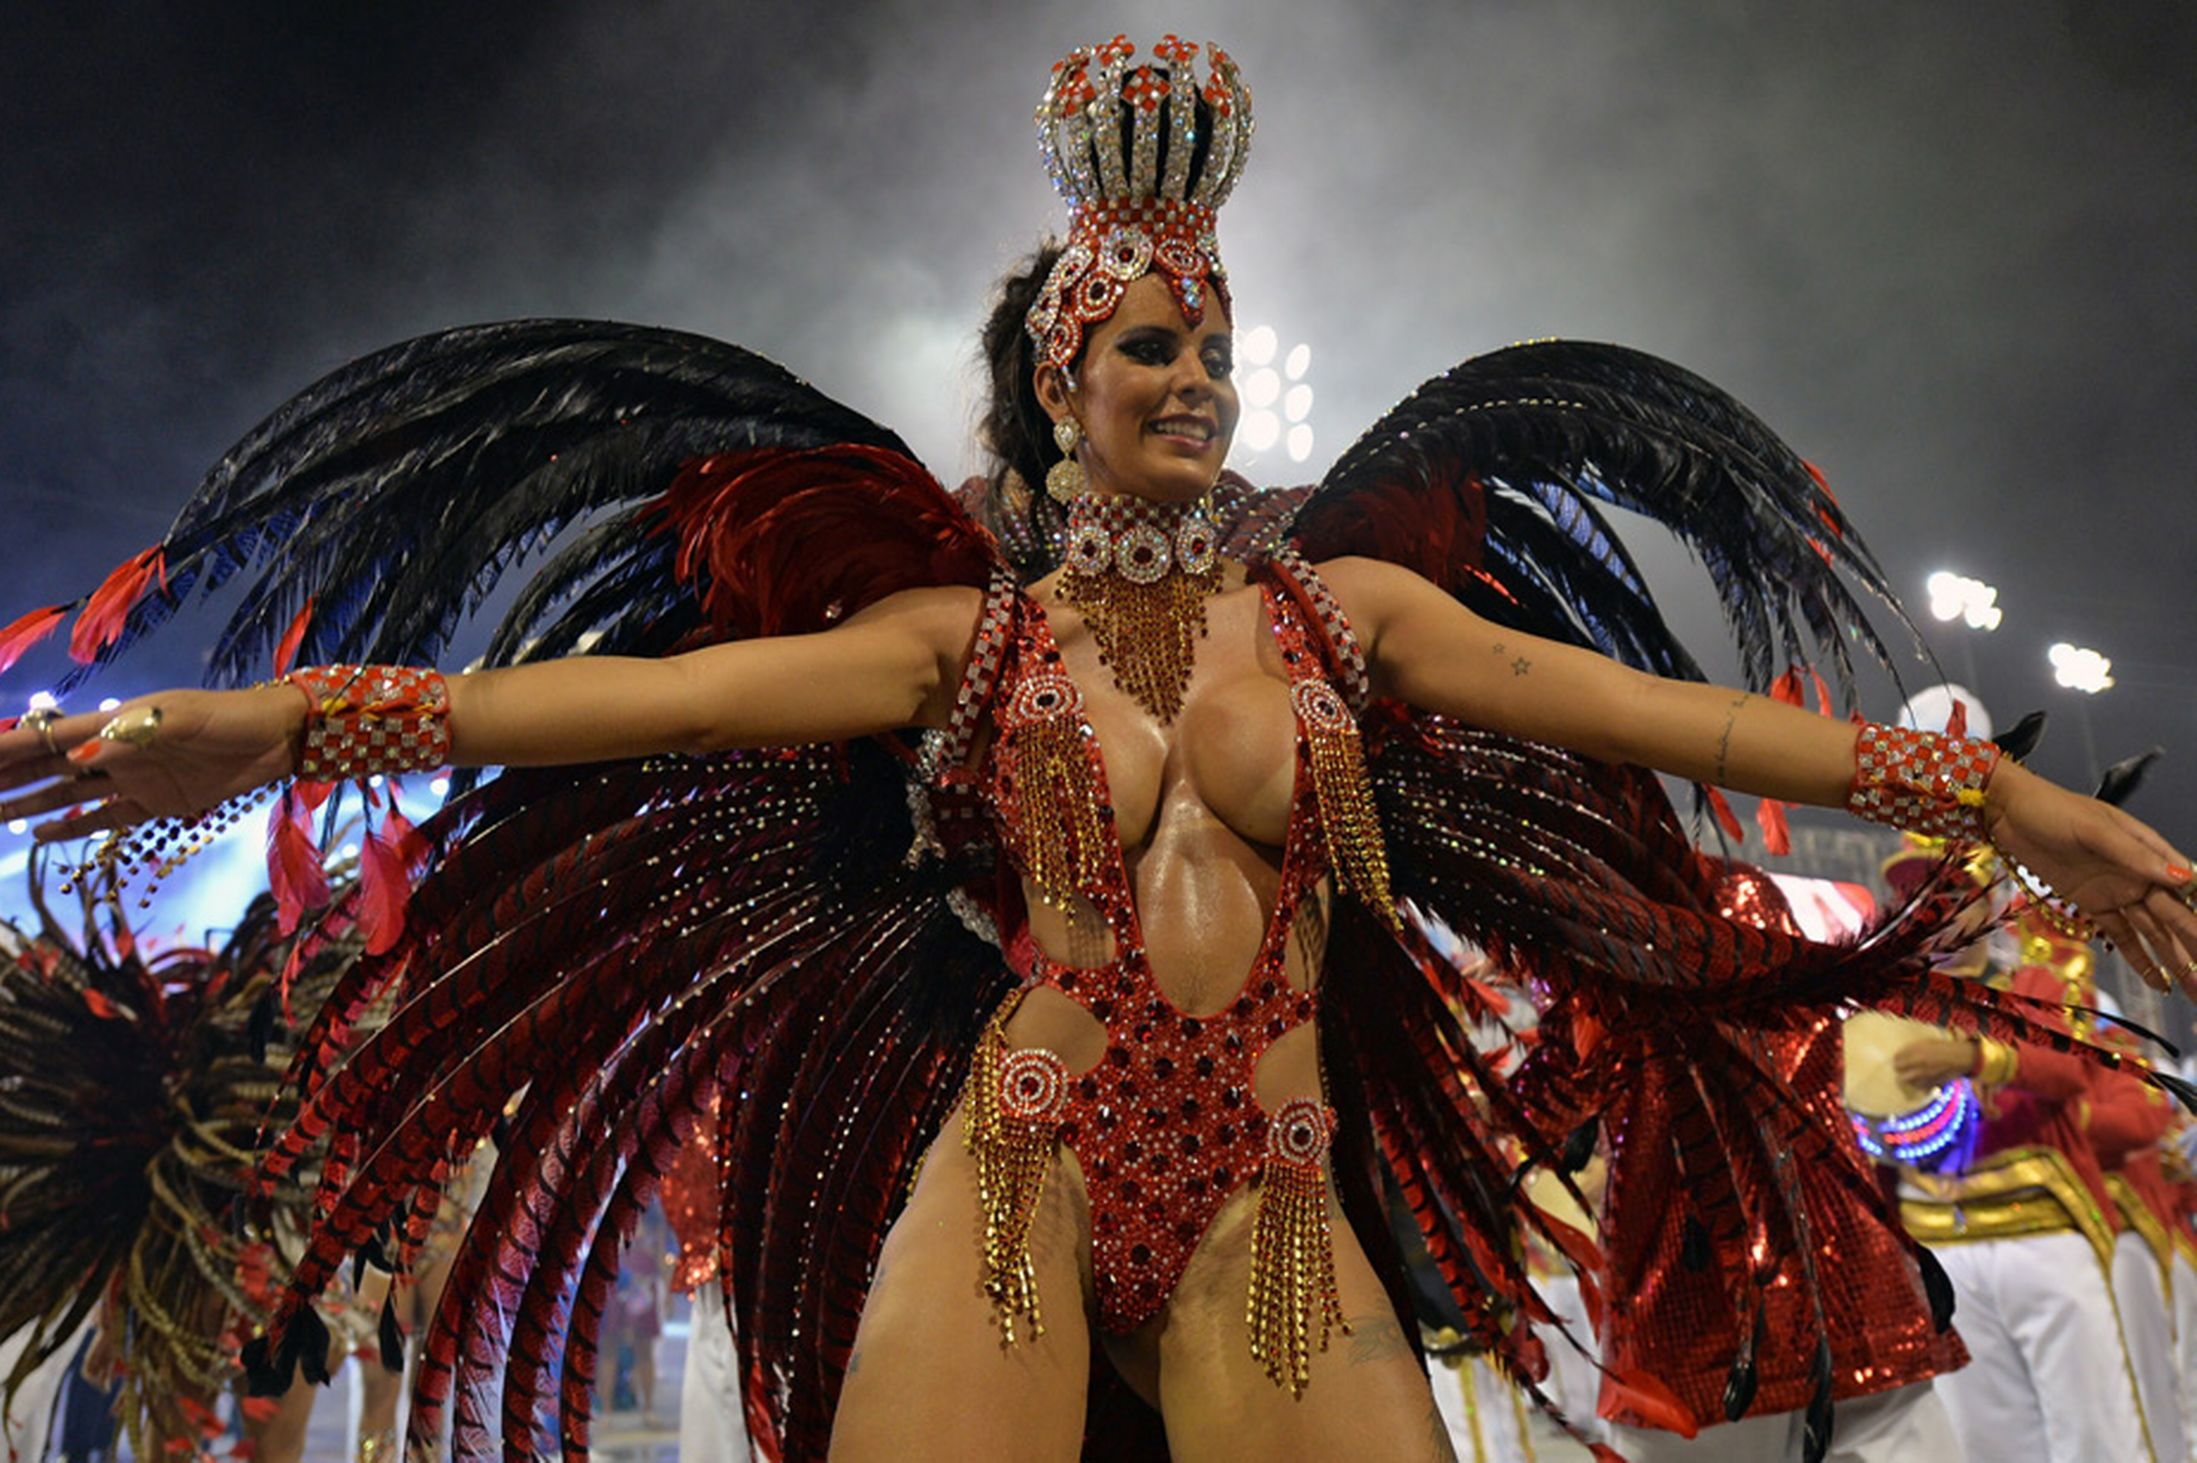 A reveler of the Perola Negra samba school performs during the second night of carnival parade at the Sambadrome in Sao Paulo, Brazil on March 1, 2014 (Photo Credit: Daily Mirror)